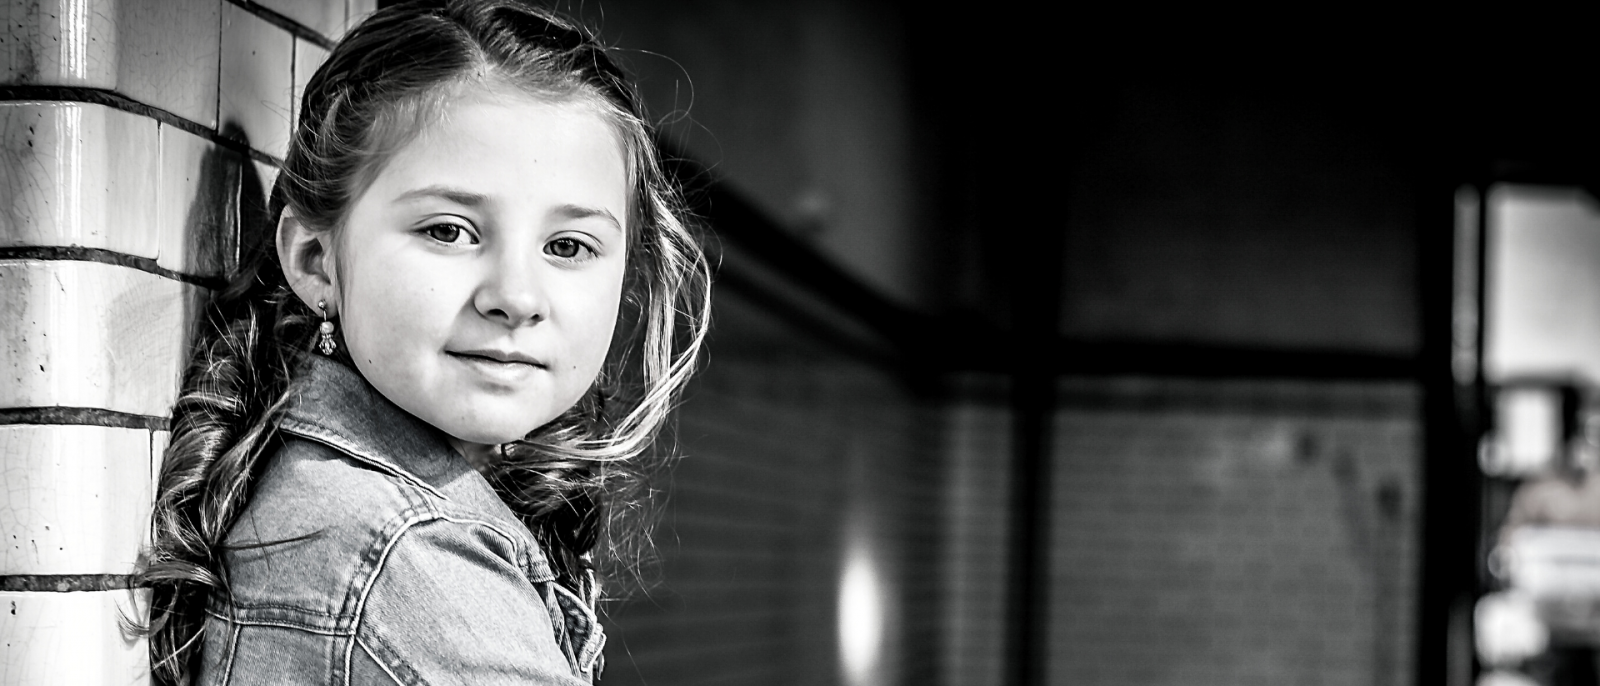 black and white photo of young girl leaning against a brick wall